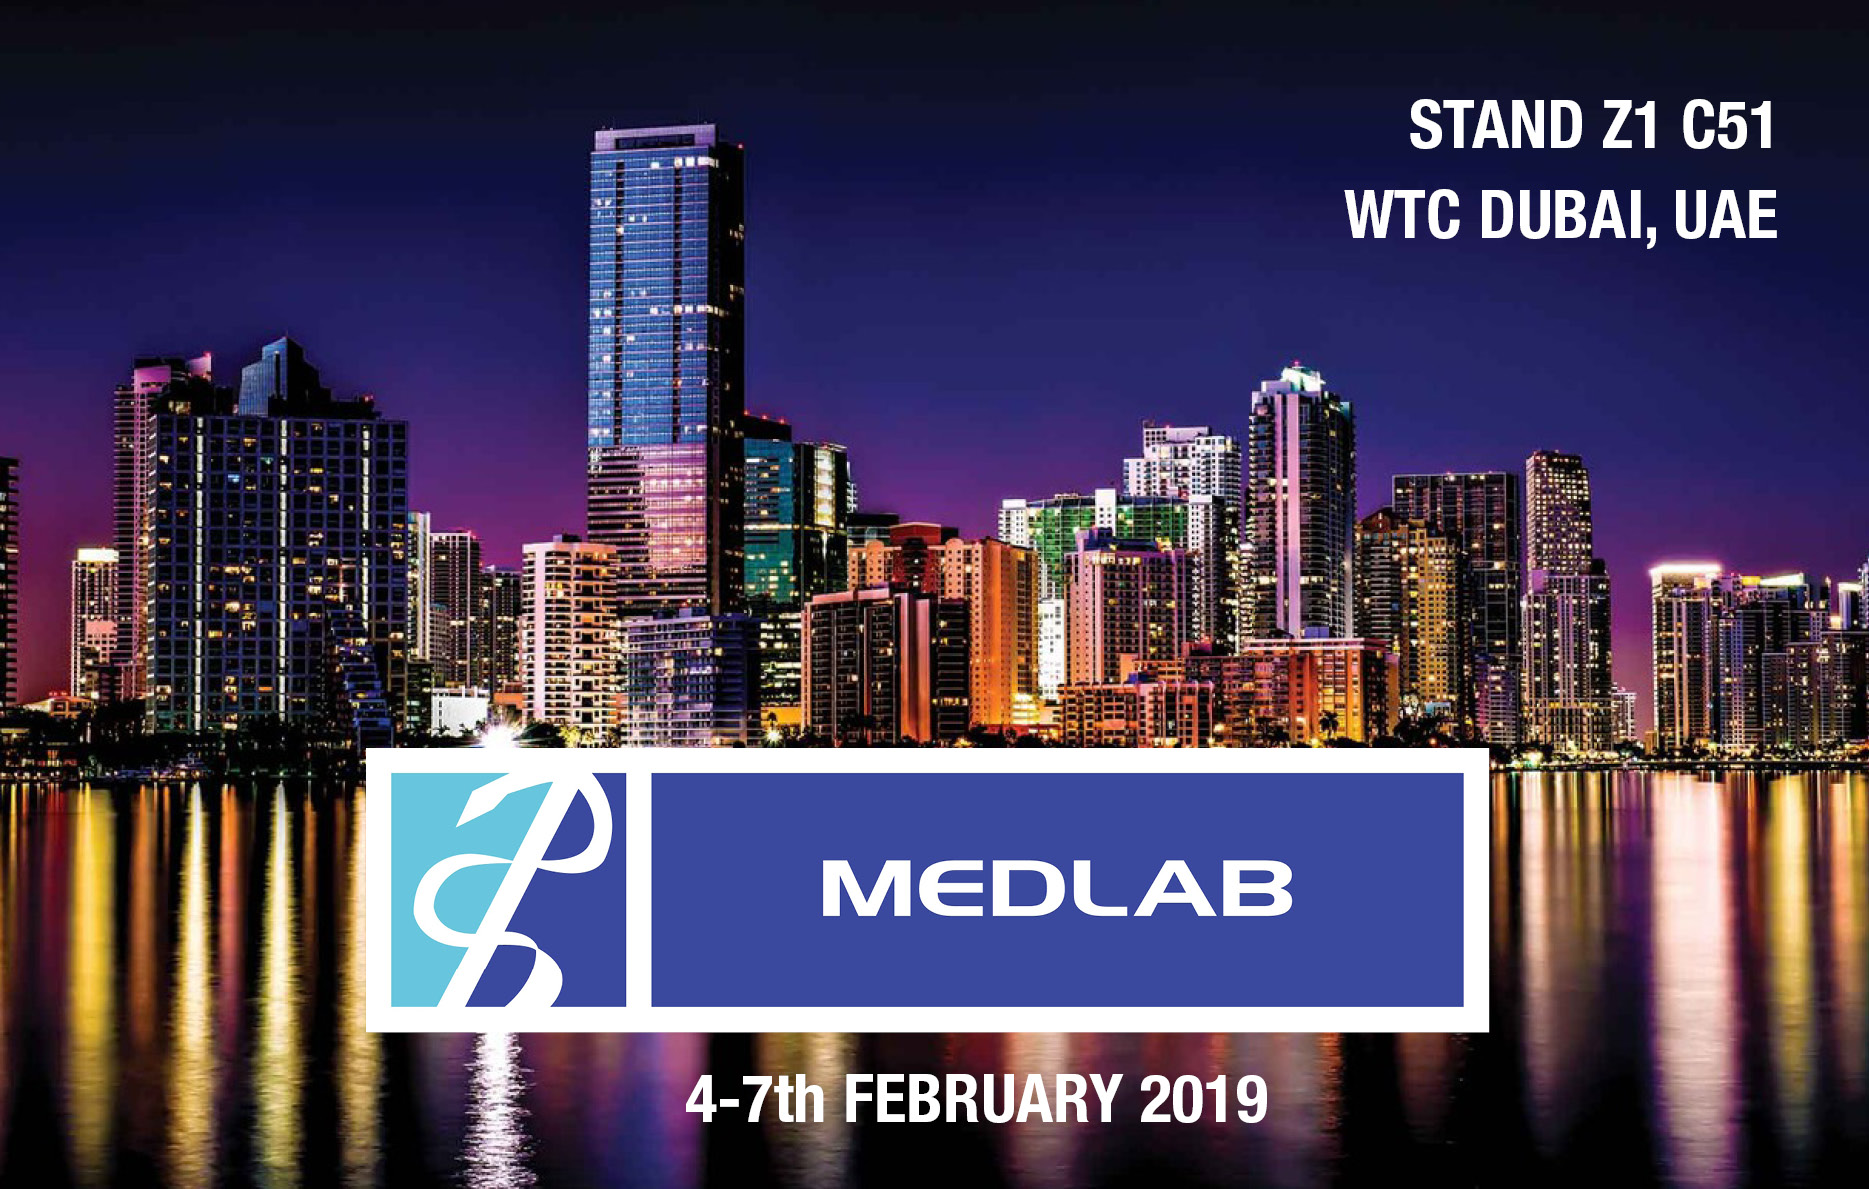 Visit our stand at MEDLAB 2019